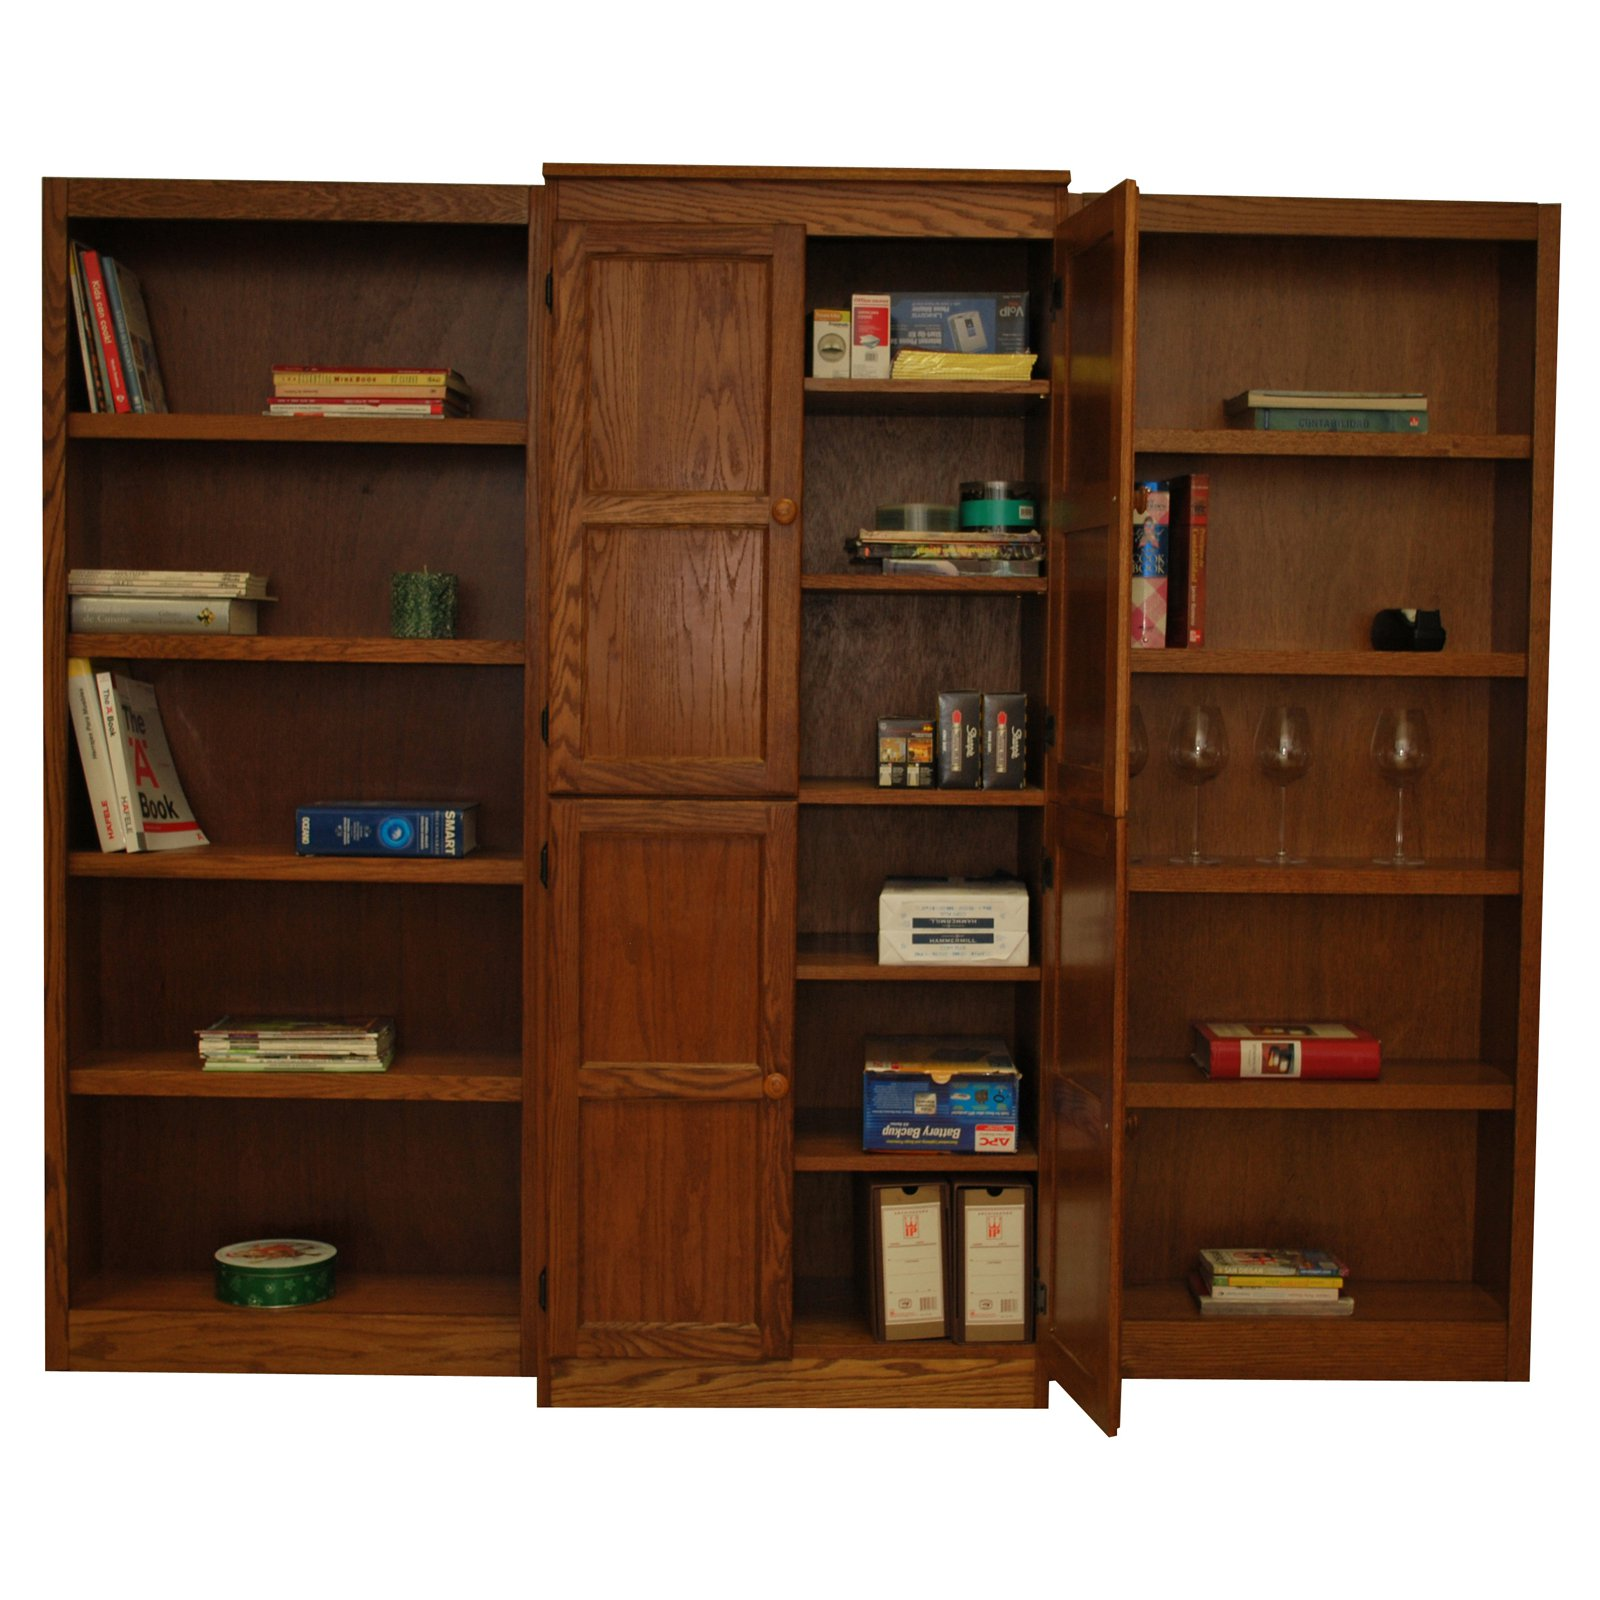 15 Shelf Bookcase Wall with Doors, 72 inch Tall - Oak Finish